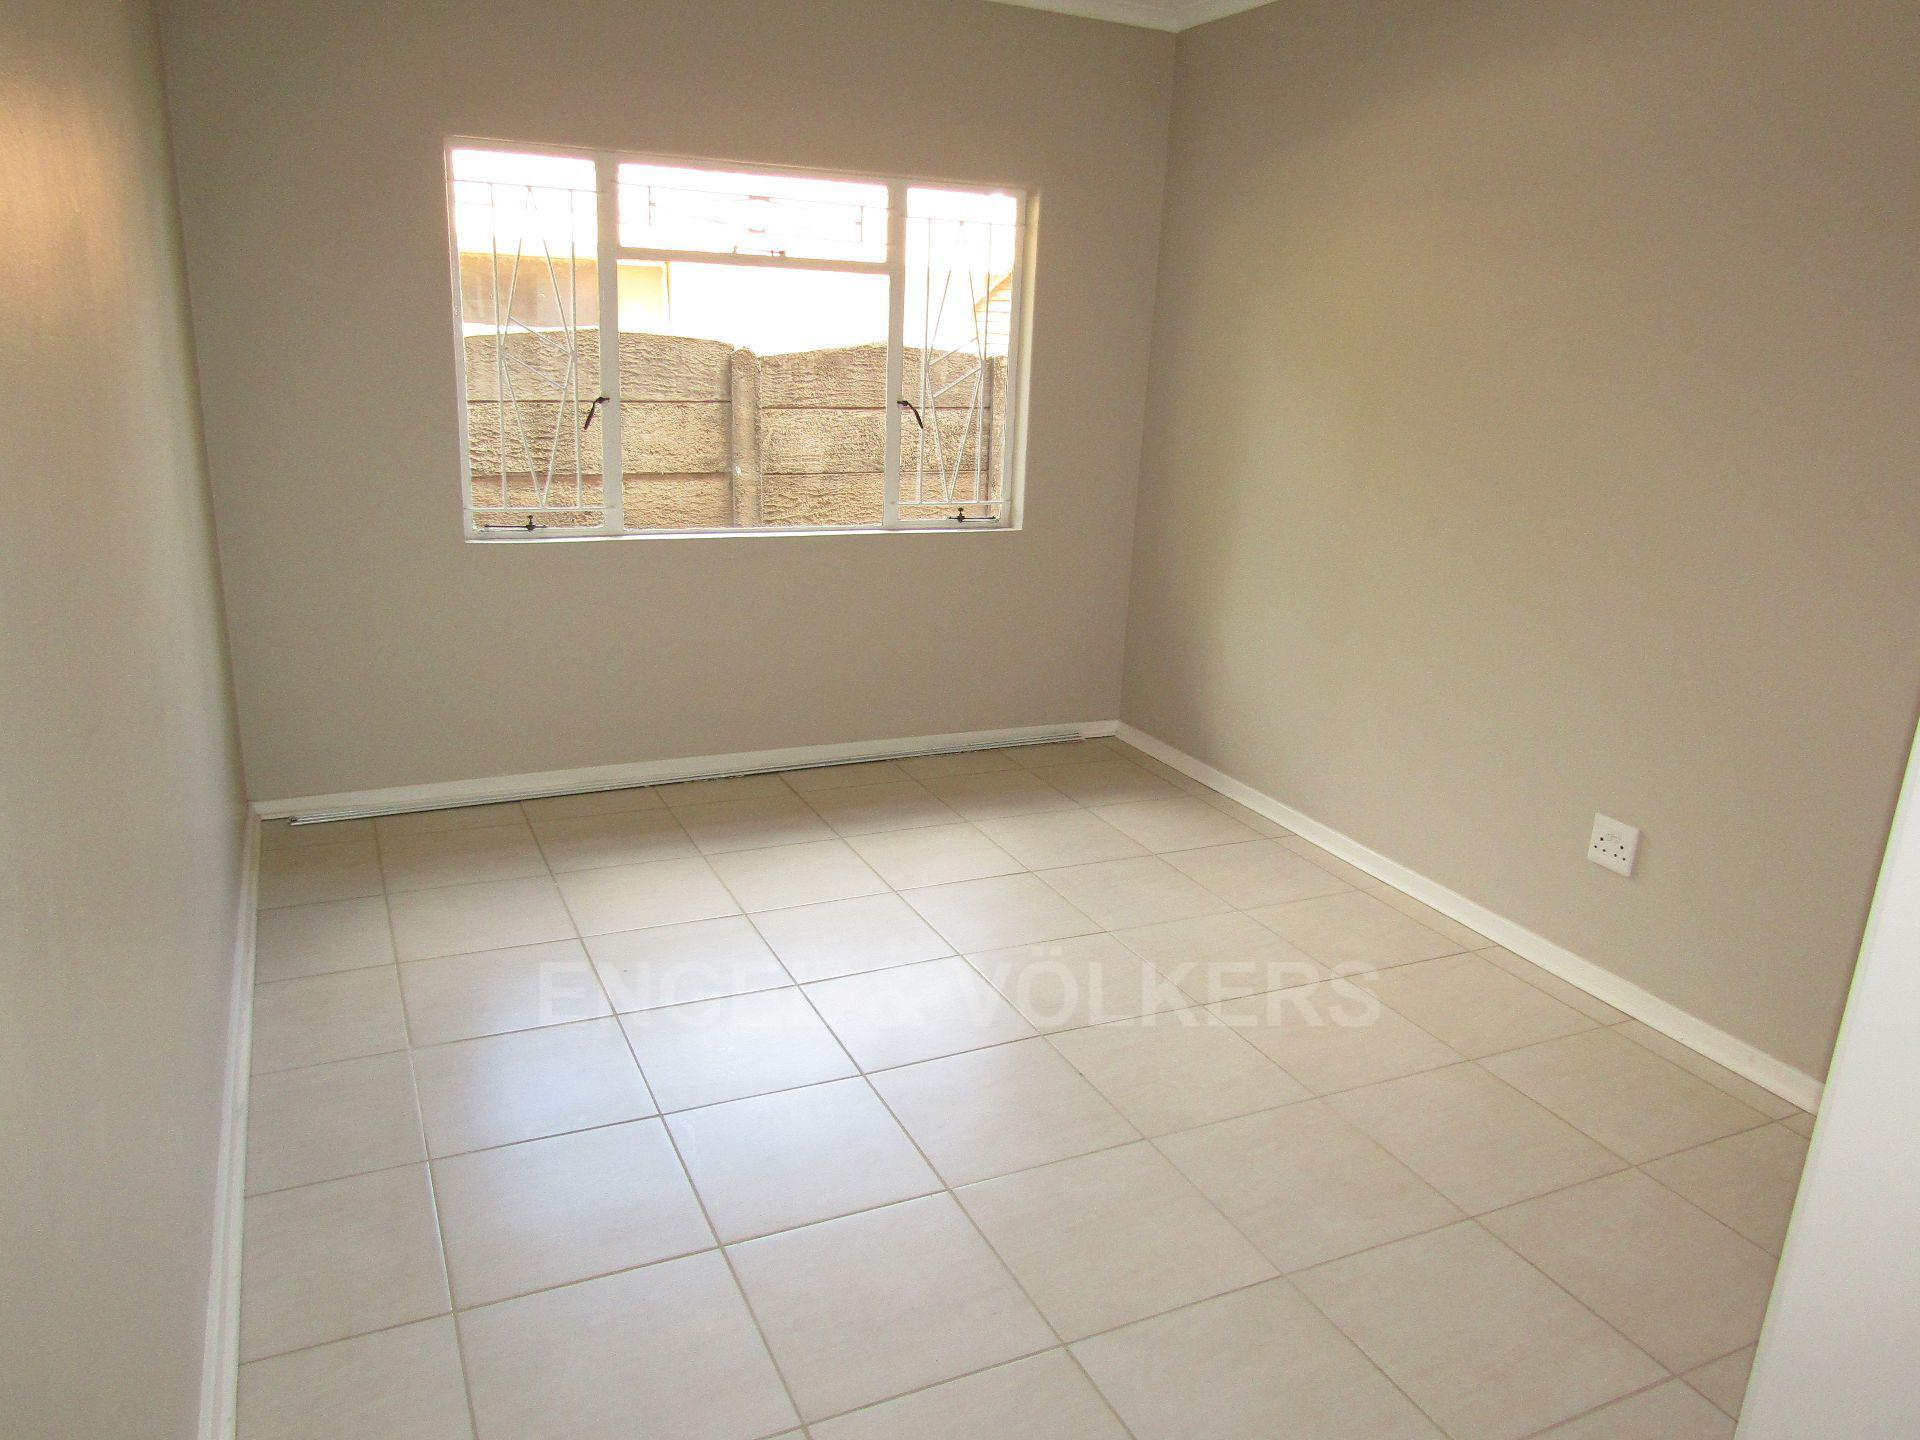 Potchefstroom Central property for sale. Ref No: 13522202. Picture no 15